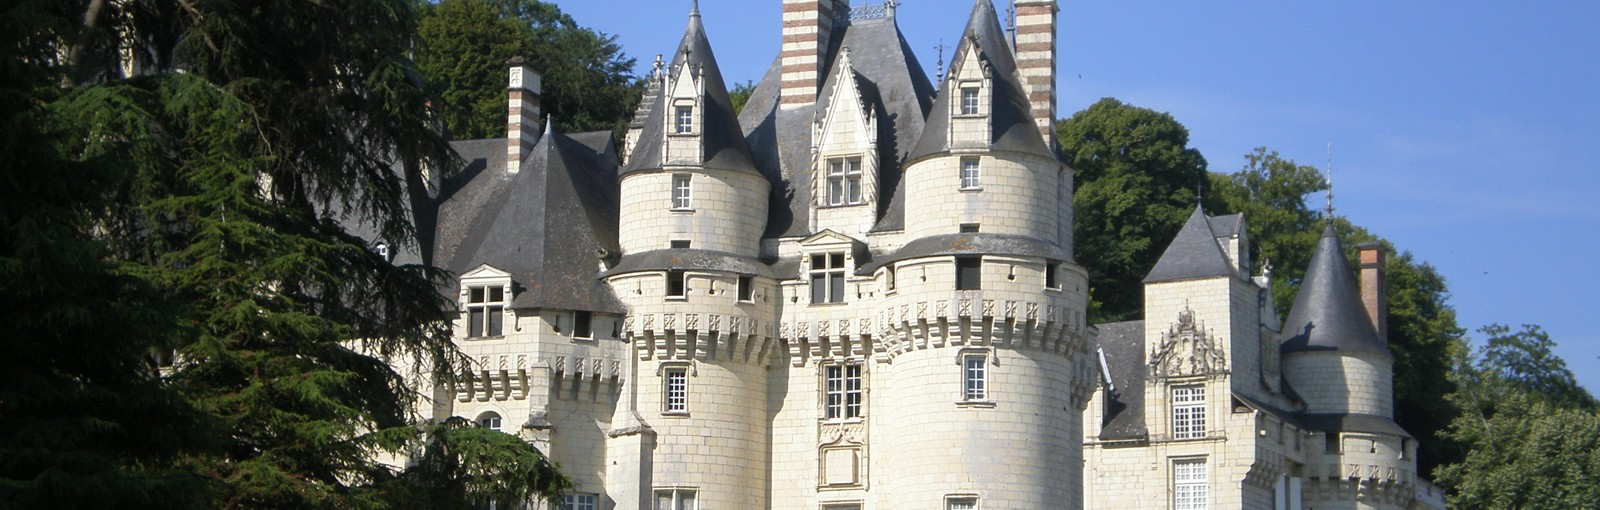 Tours Paris – Champagne - Burgundy – Berry – Loire Valley - Paris - Multi-régional - Circuitos desde Paris